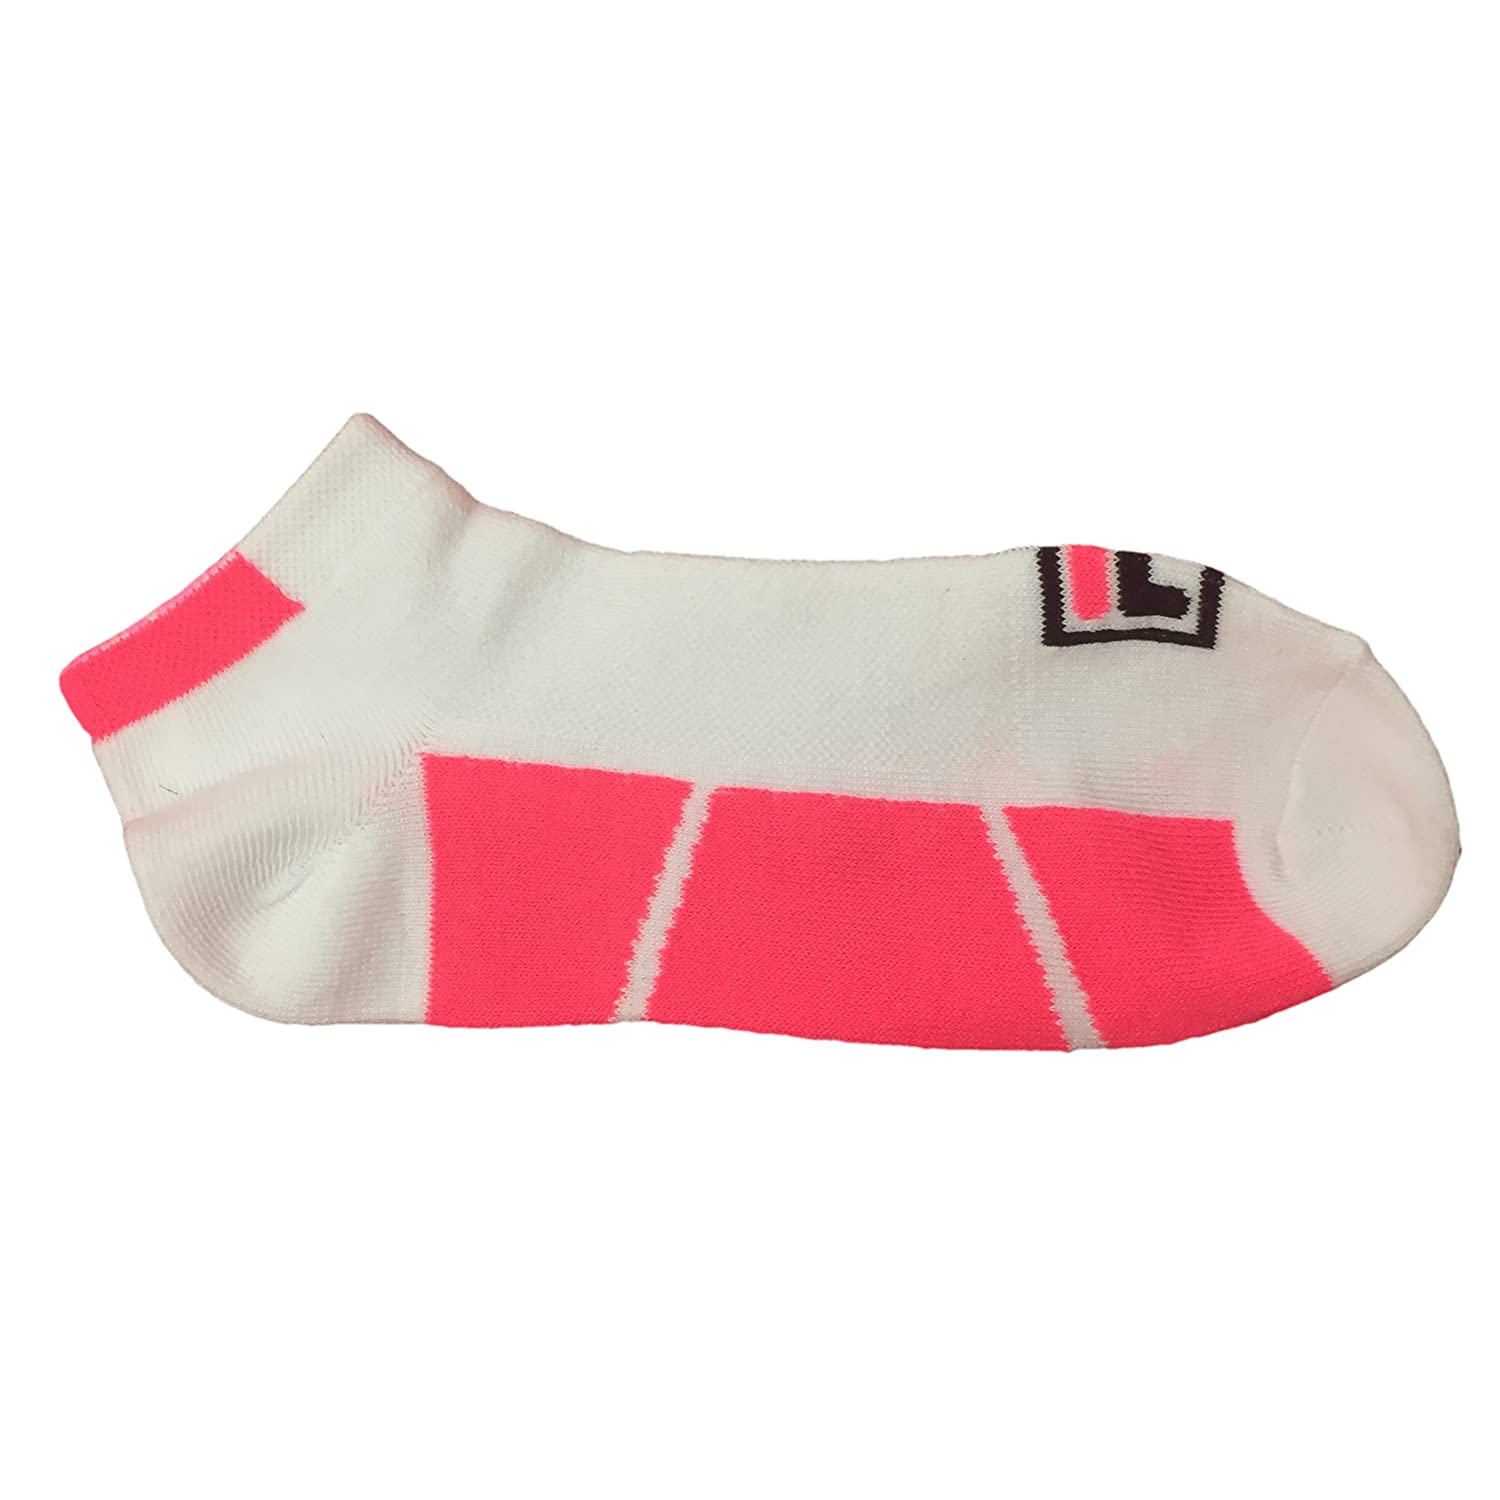 Amazon.com: Fila Women Socks - Shock Dry Low-cut White Assorted Color 3 Pairs: Clothing